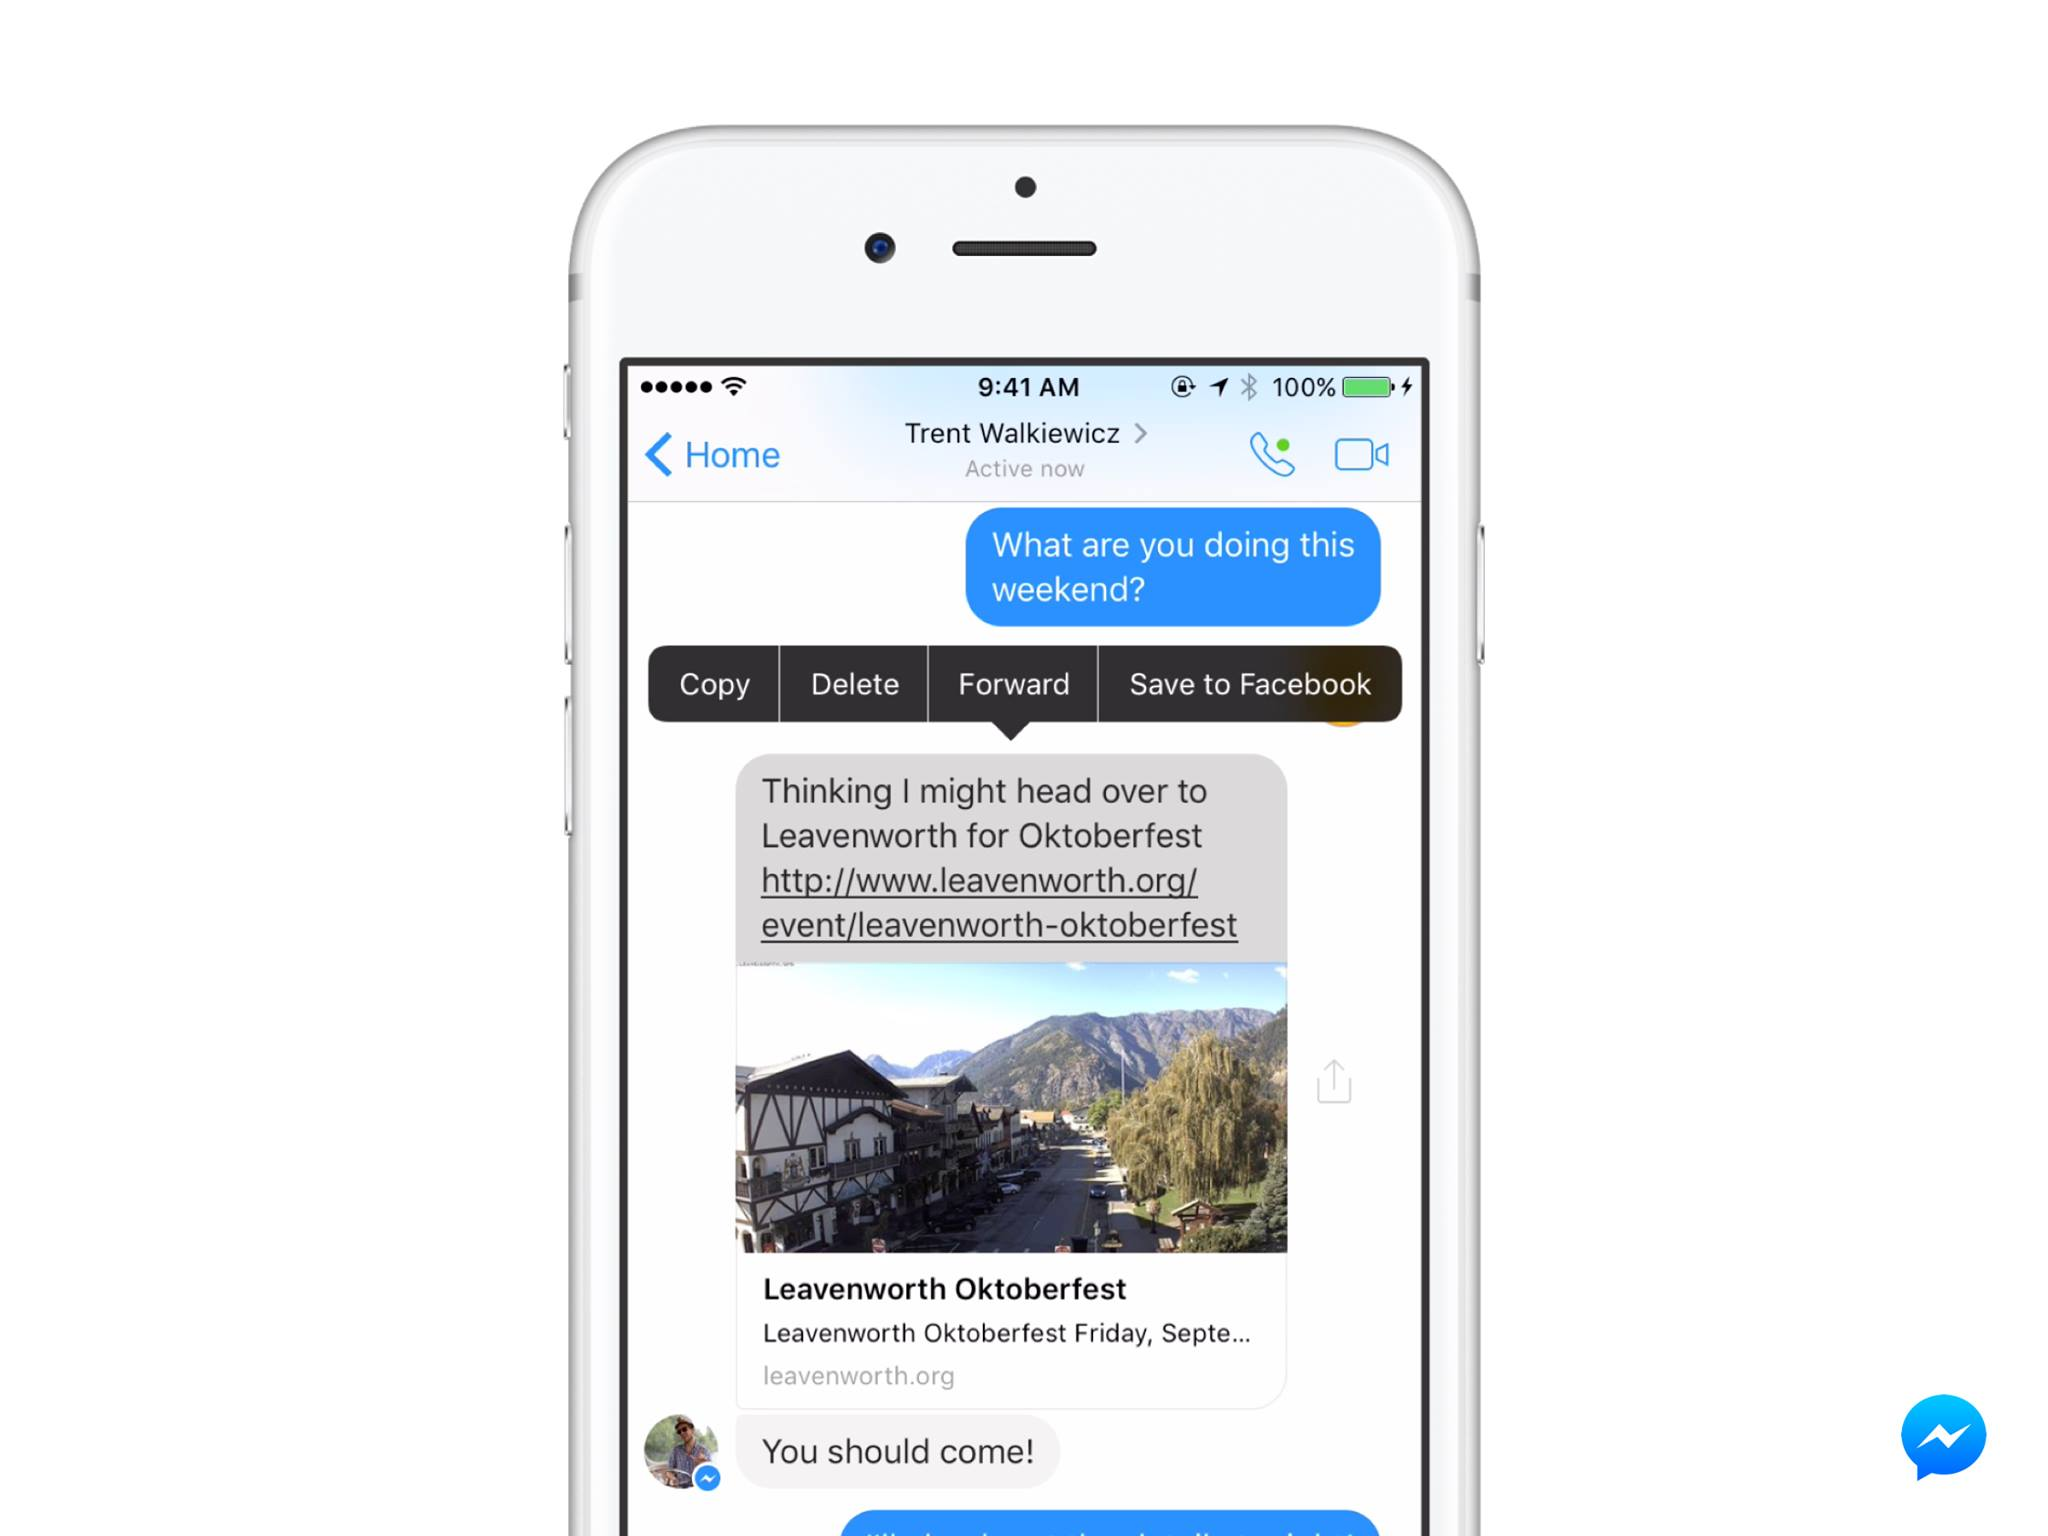 Facebook has announced that users can now save links from Messenger, a small but functional update to help users keep track of content when they're on the go.